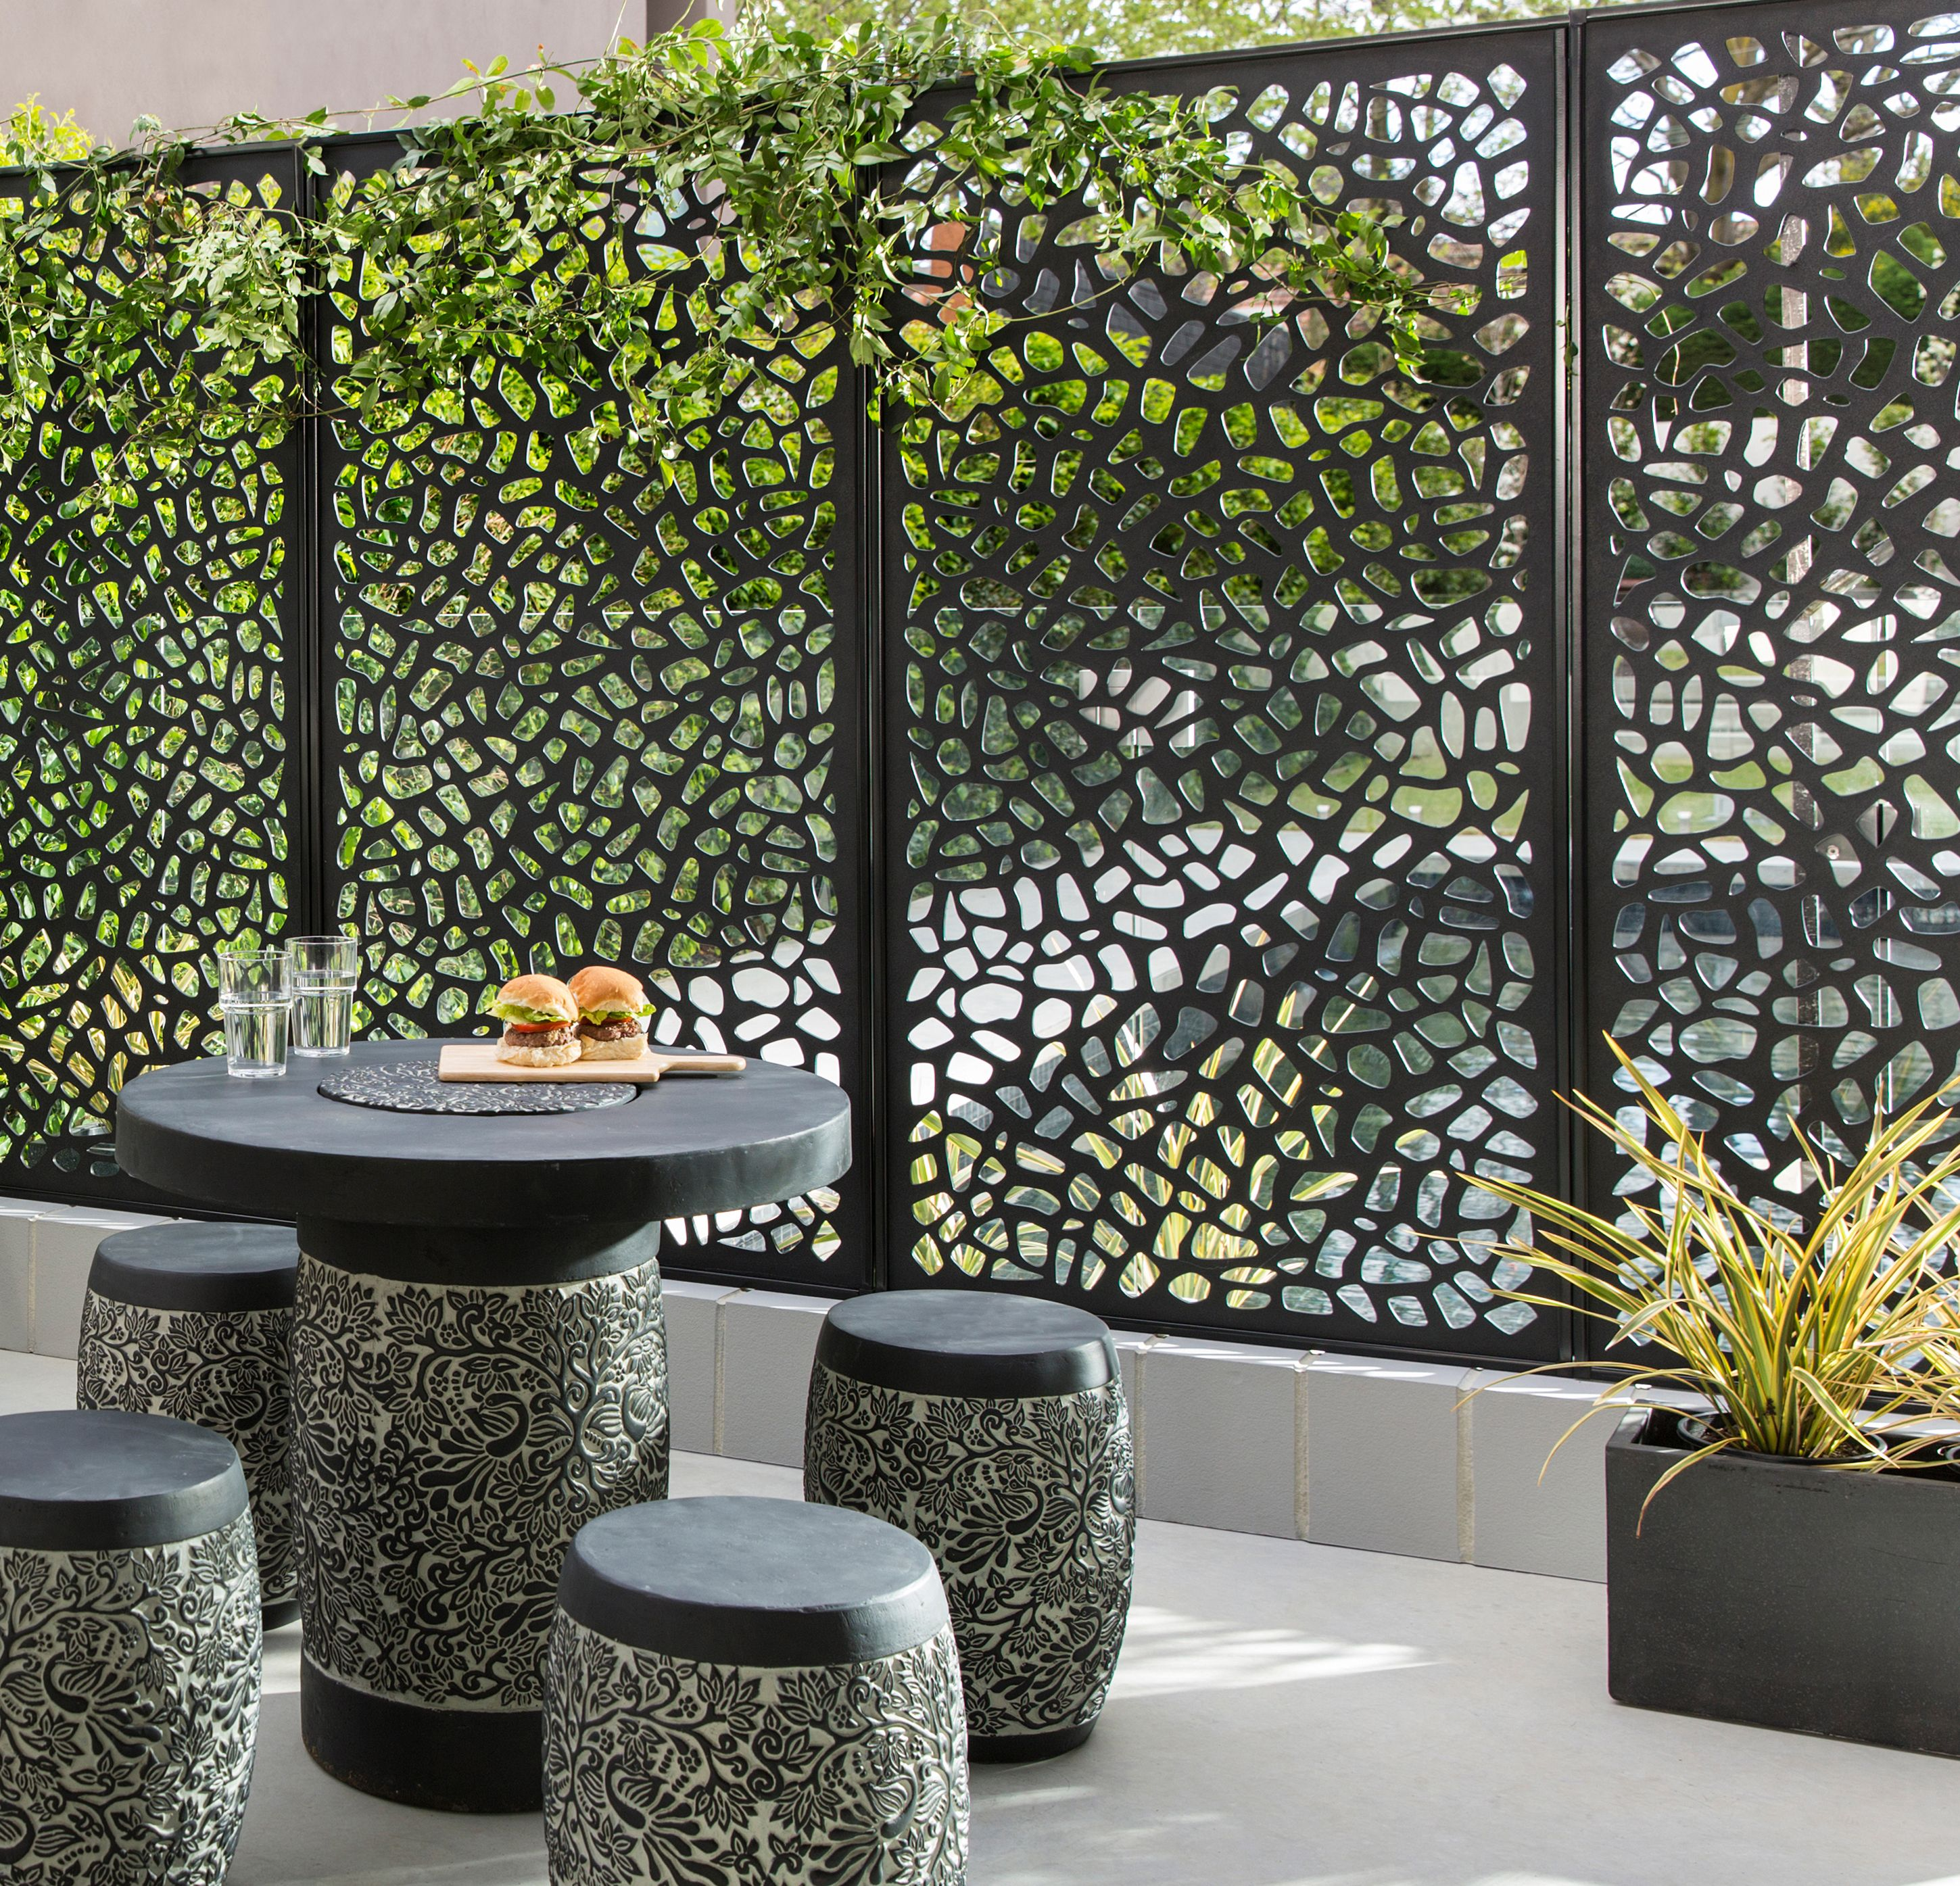 Small Spaces Can Be Full Of Light With Matrix Screens Create Intimate Areas That Hide Not As Wond Privacy Screen Outdoor Patio Privacy Screen Outdoor Screens